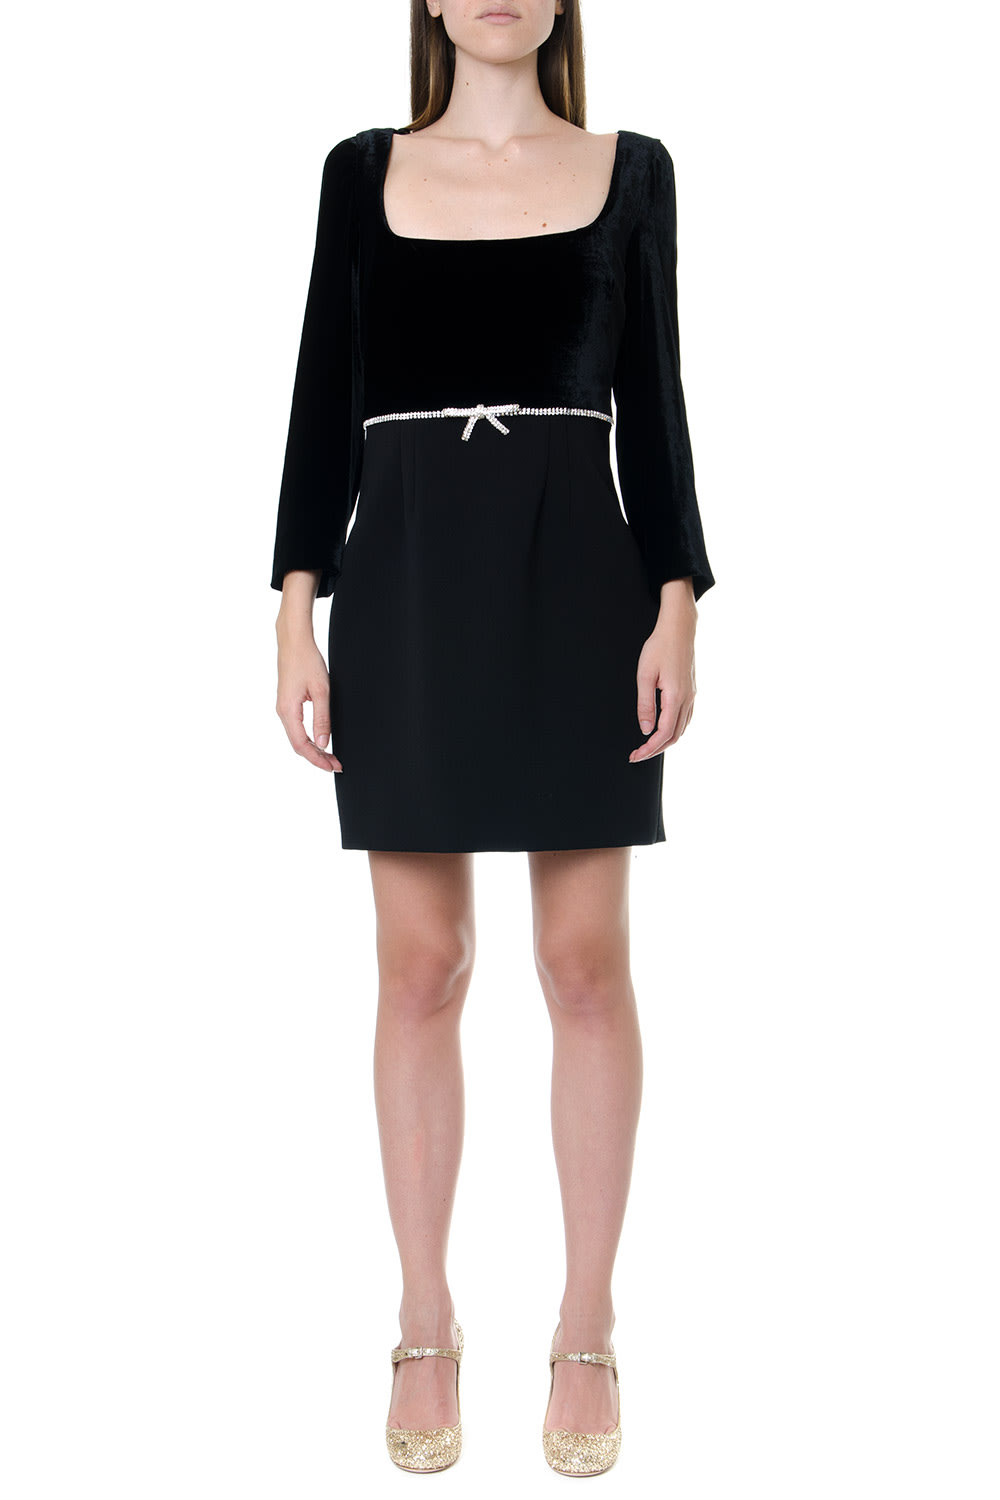 Miu Miu Black Crepe & Velvet Short Dress